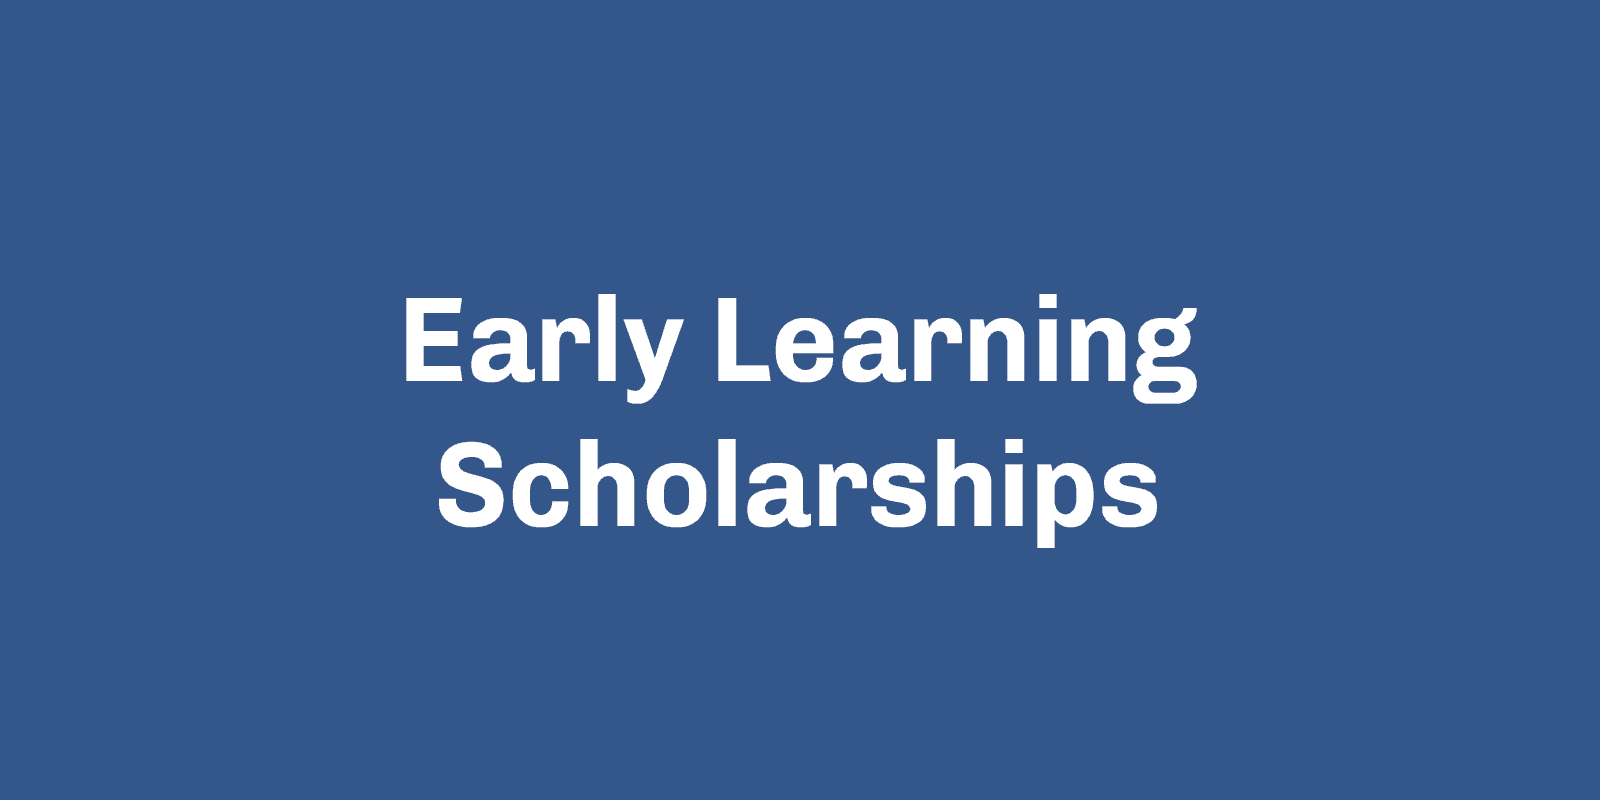 Early Learning Scholarships